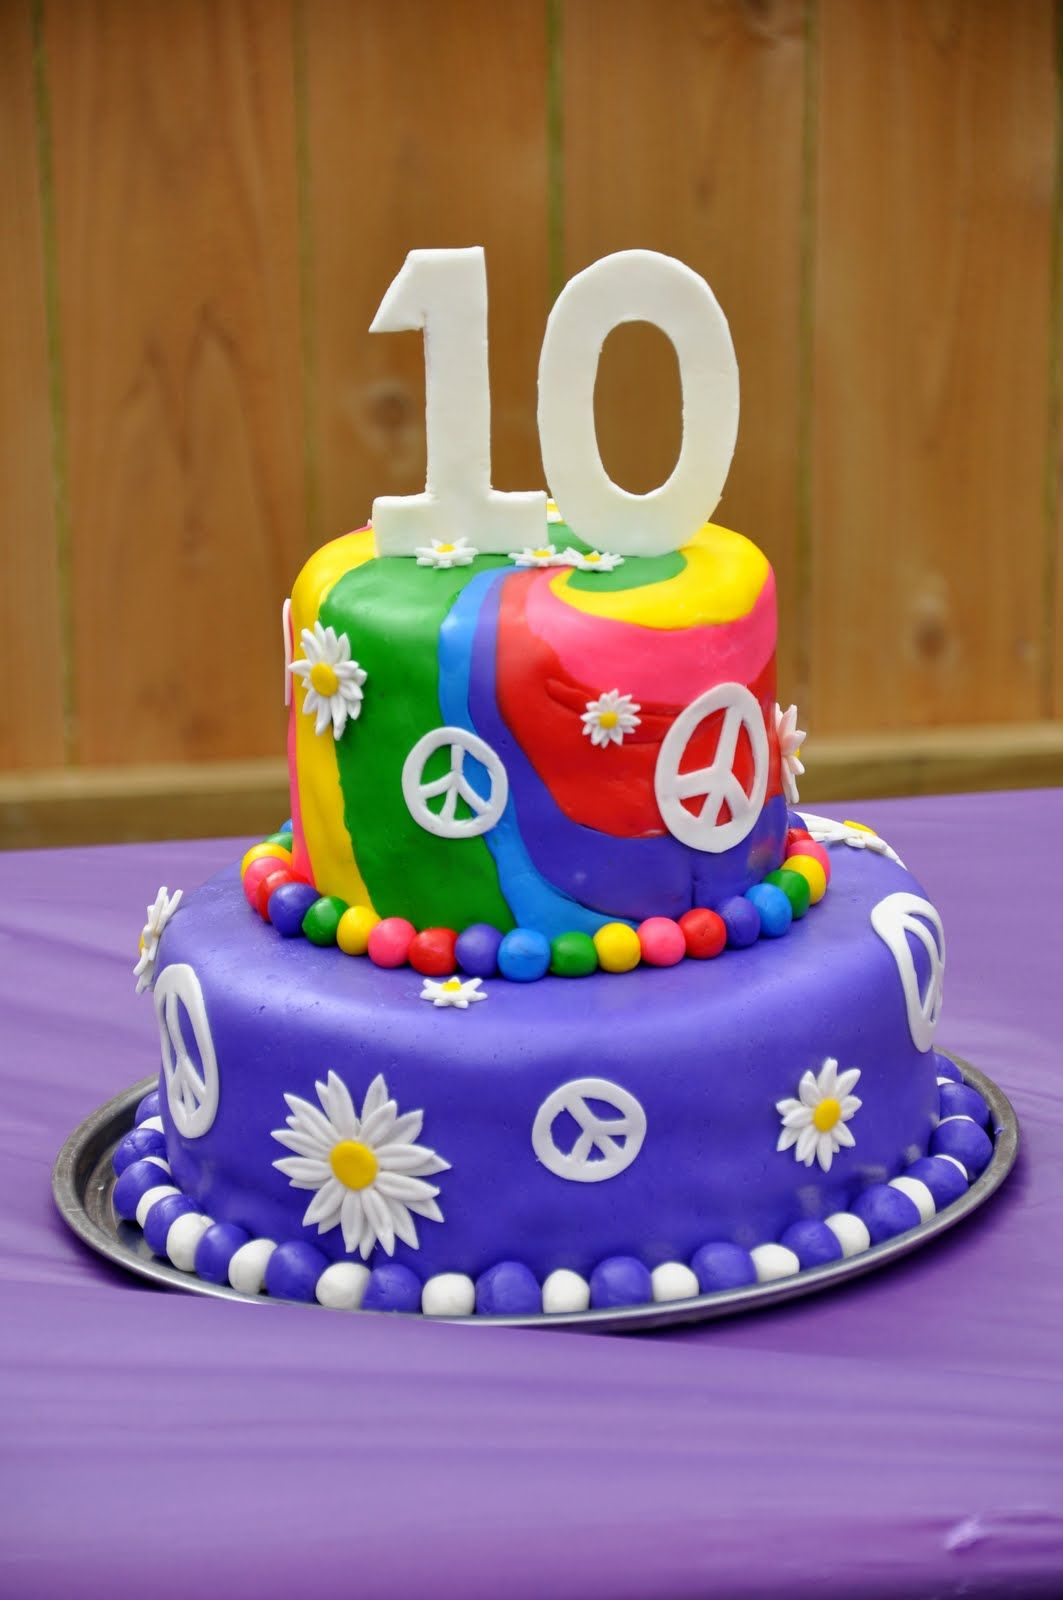 Image Result For 10th Birthday Cakes For Girls Fun Stuff